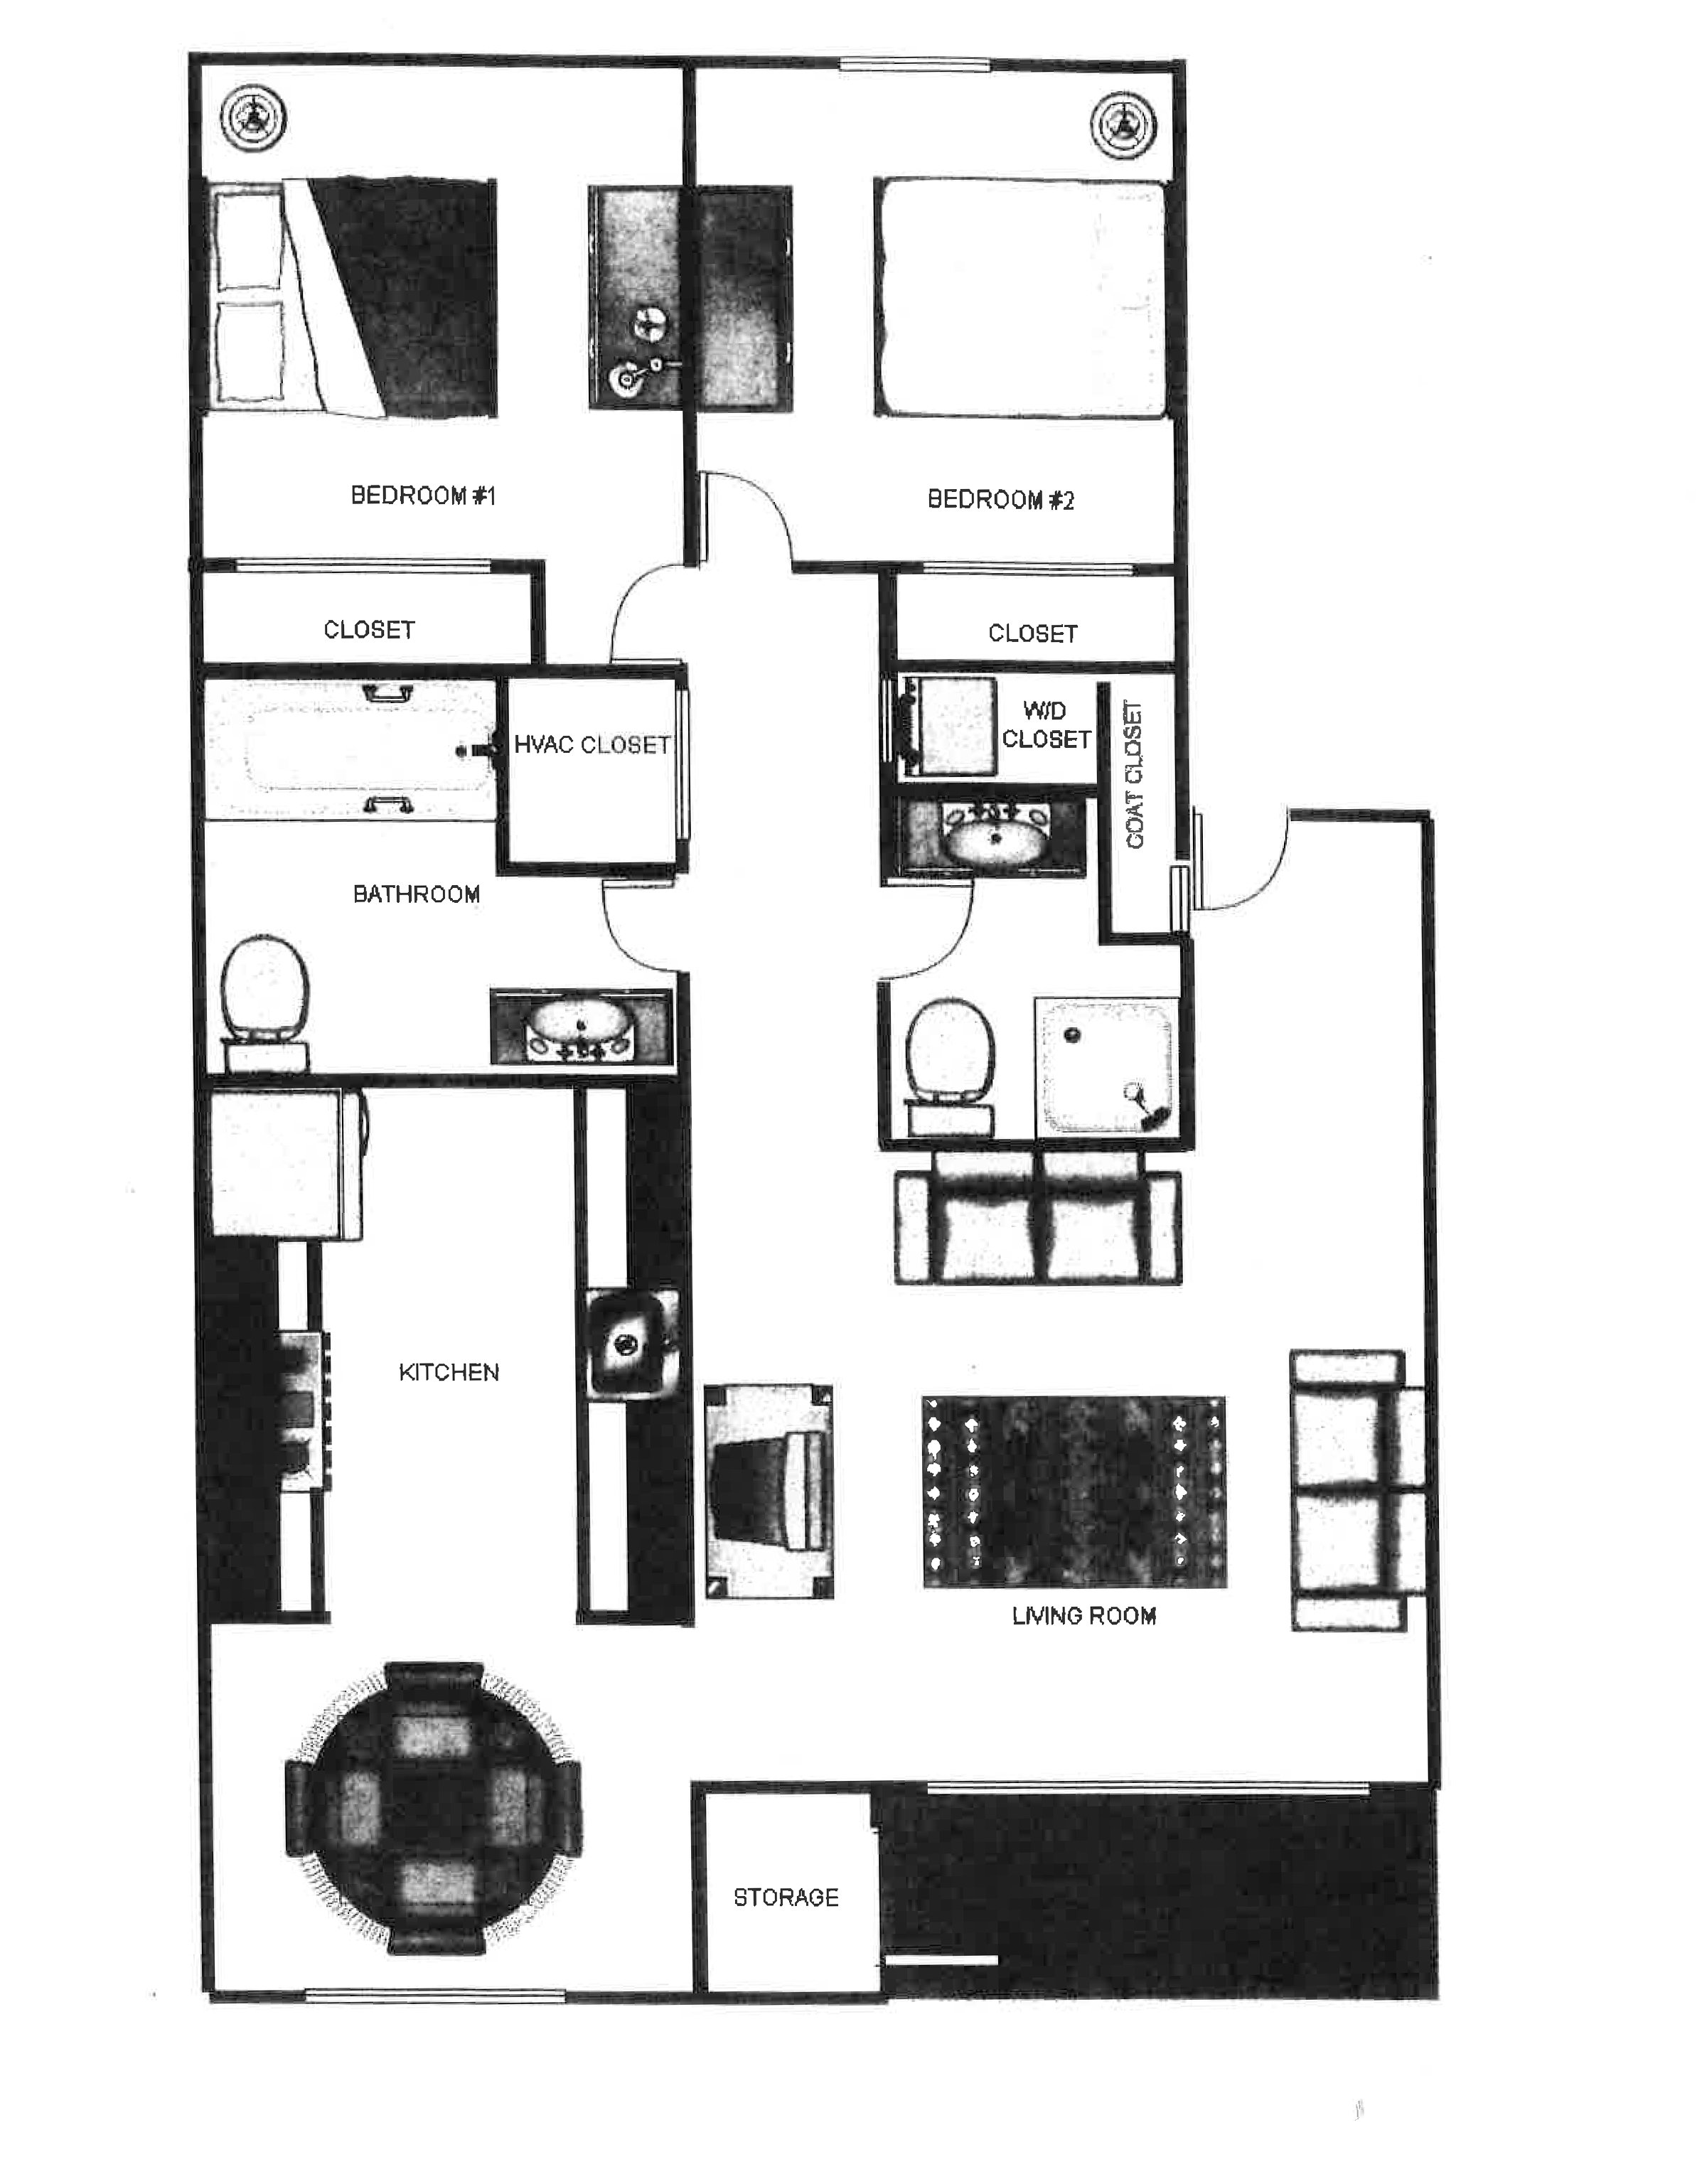 Parkway Commons Apartments Floor Plan 2 x 2